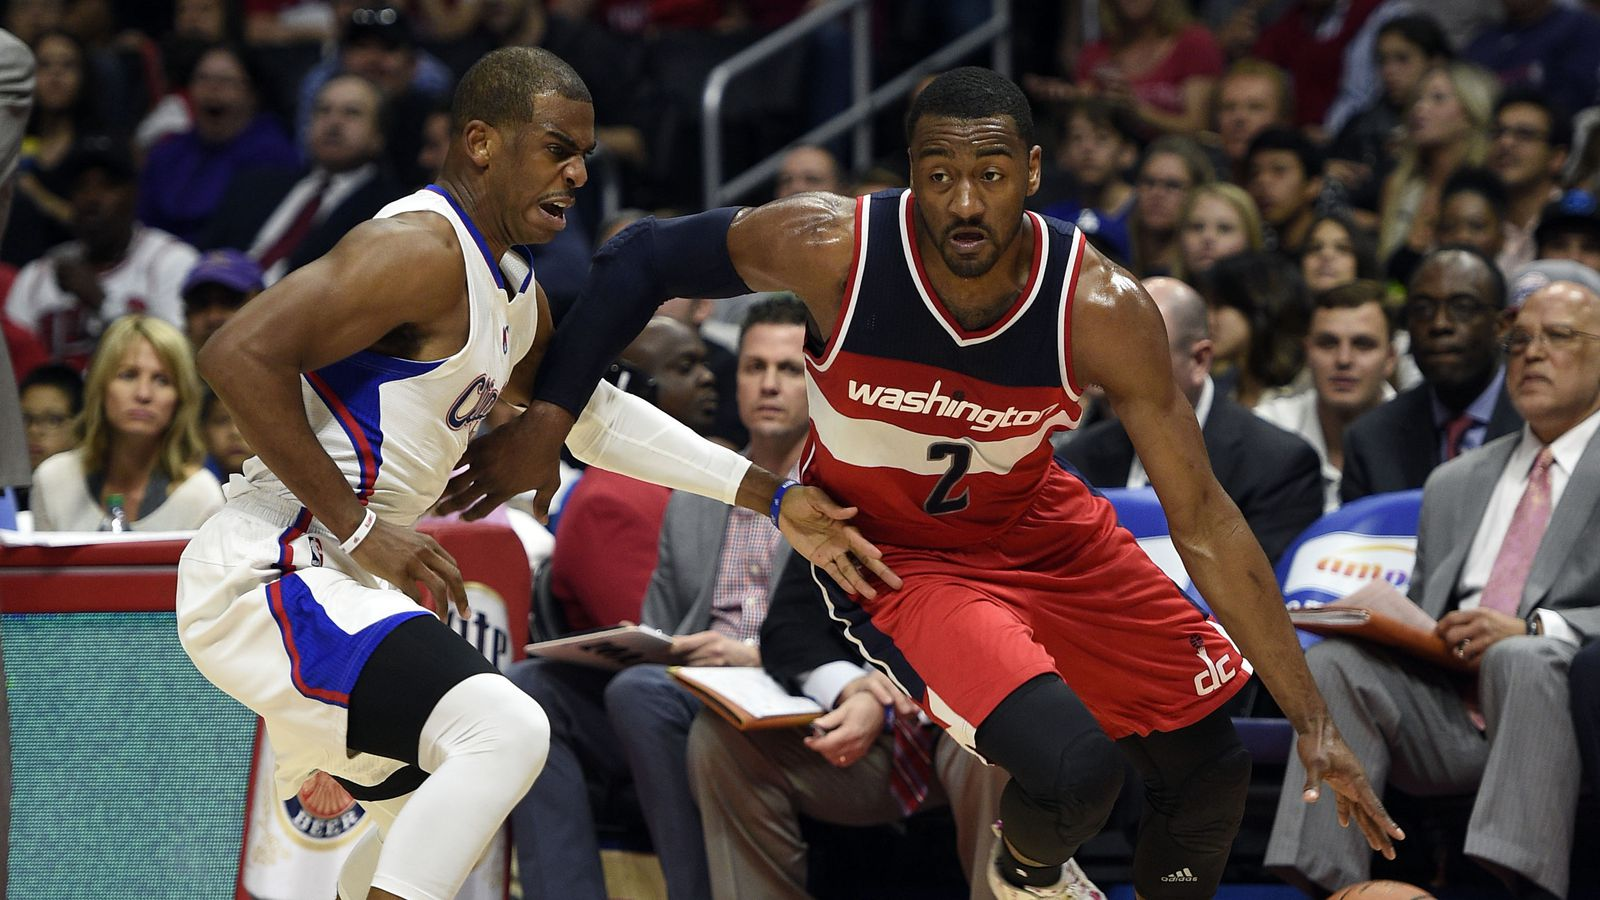 wizards vs clippers - photo #29